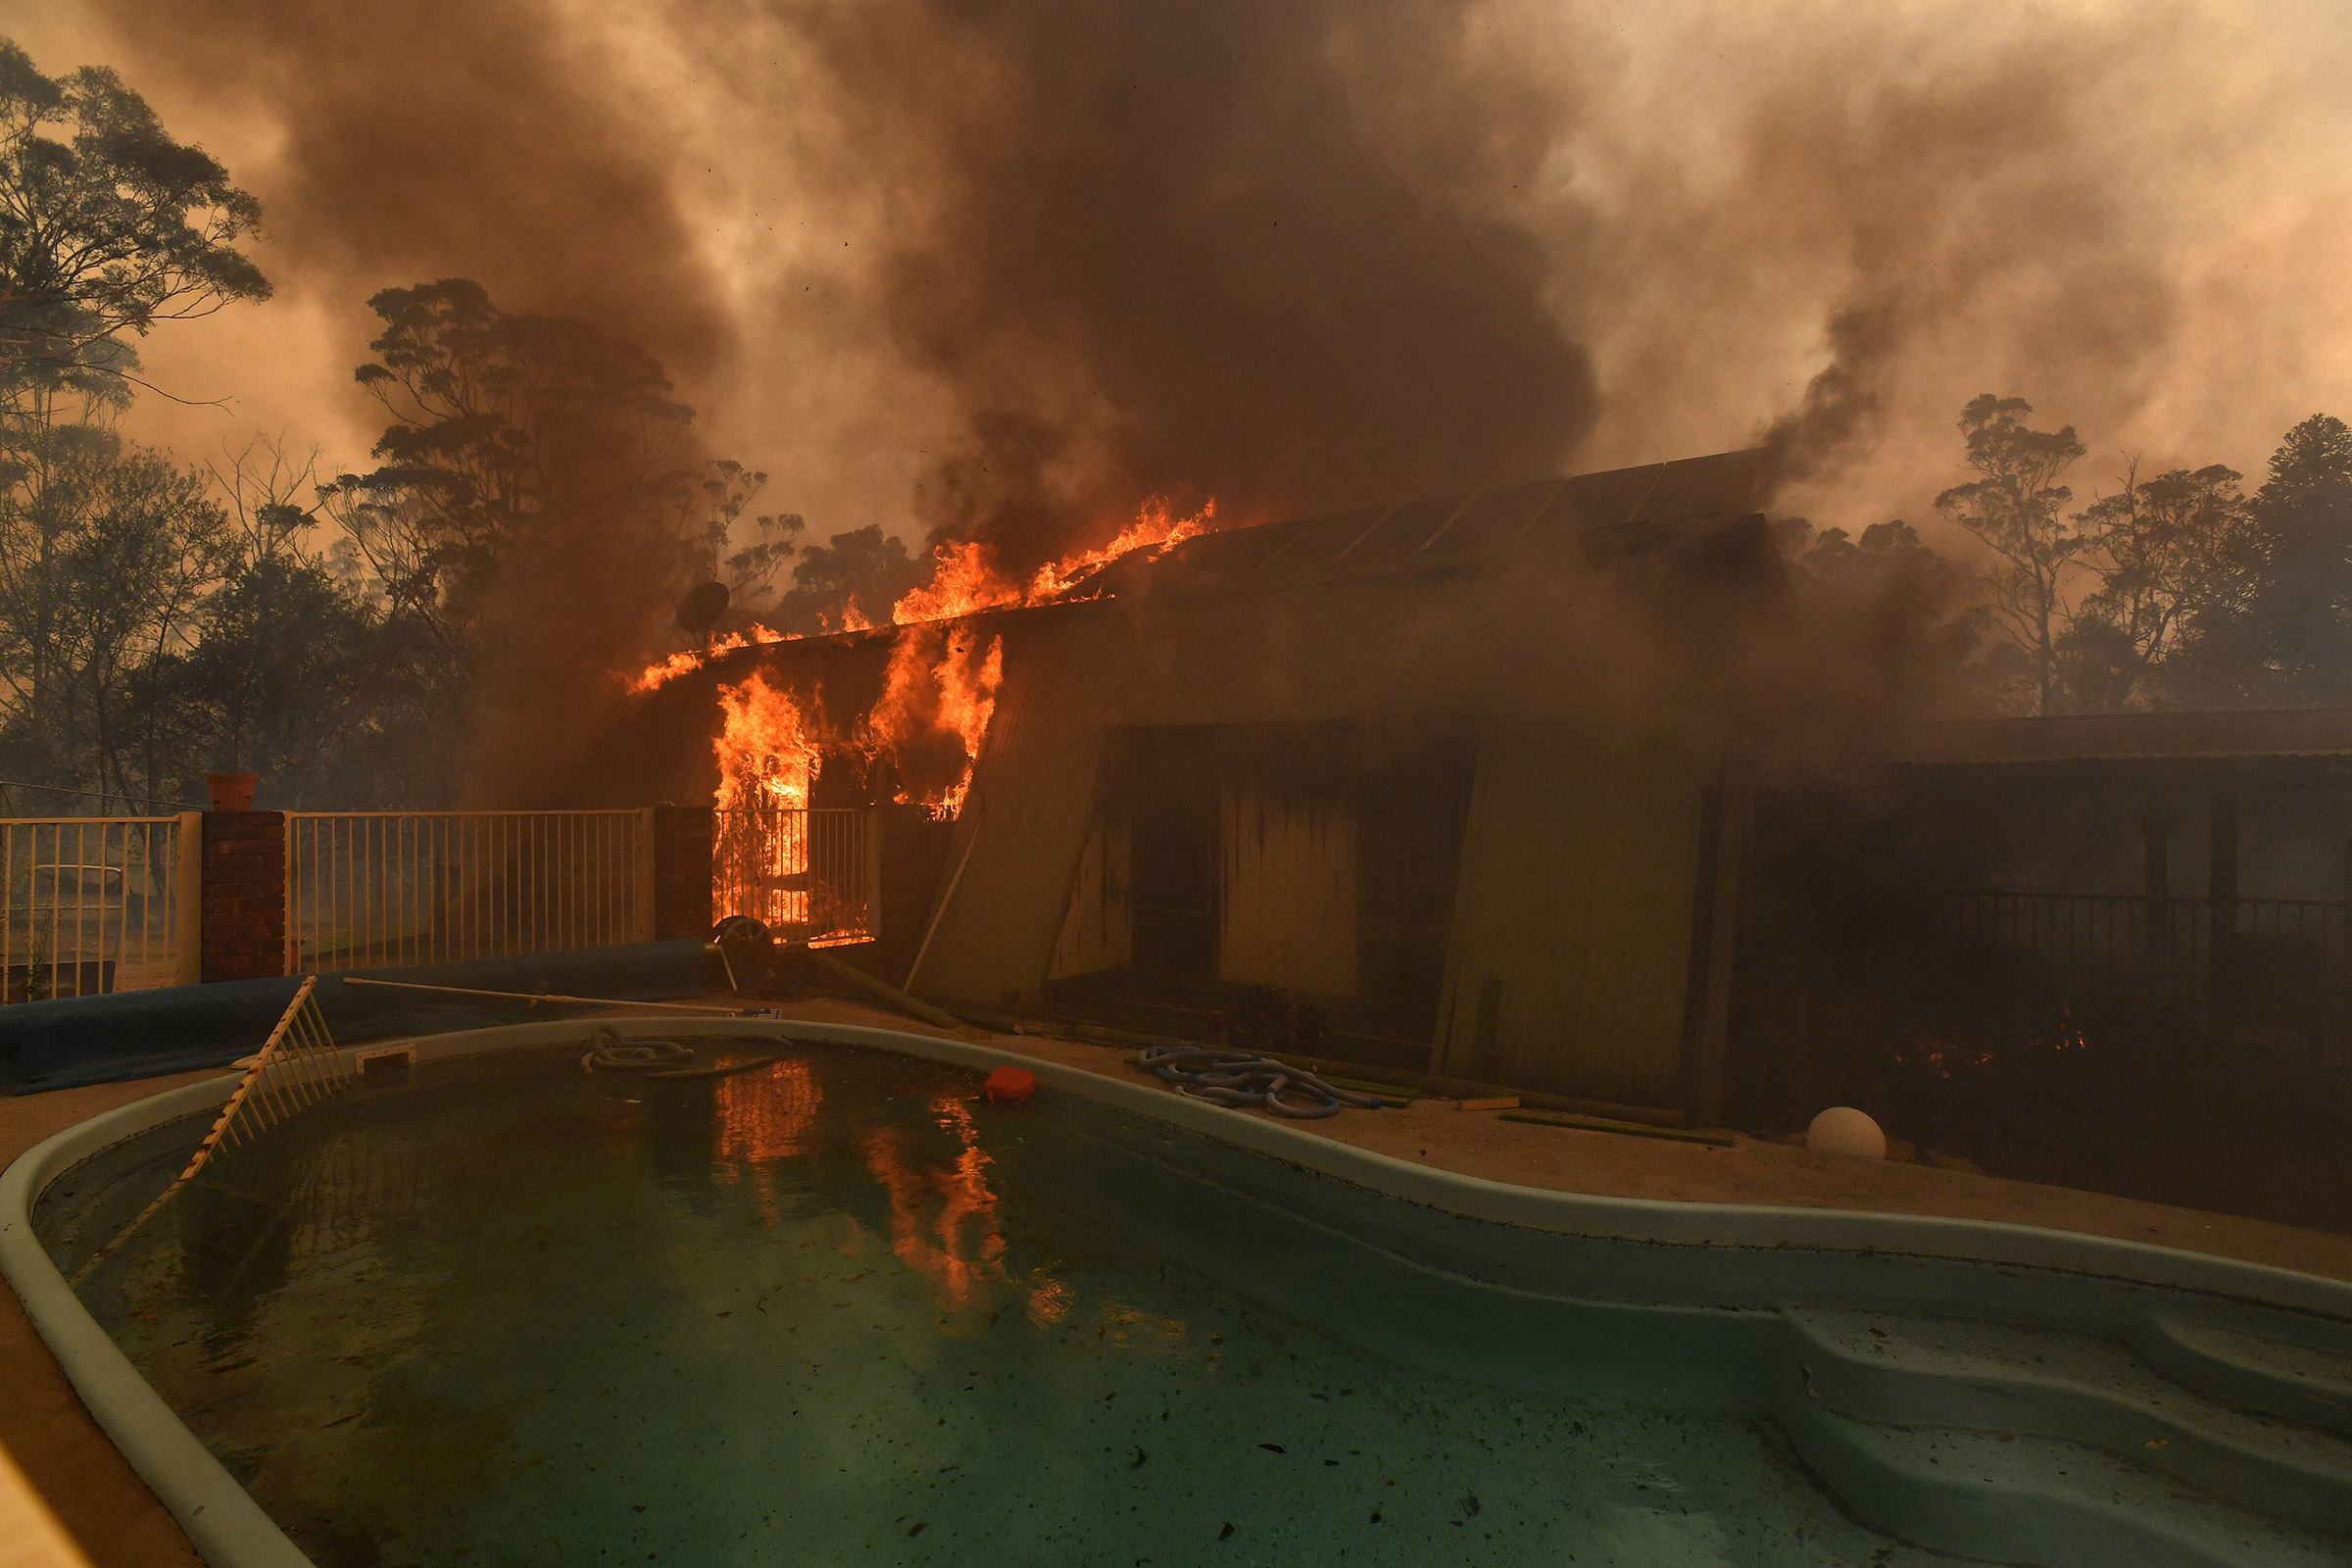 A home lost to a bushfire in Buxton, as the Green Wattle Creek Fire threatens a number of communities, on Dec. 19, 2019.